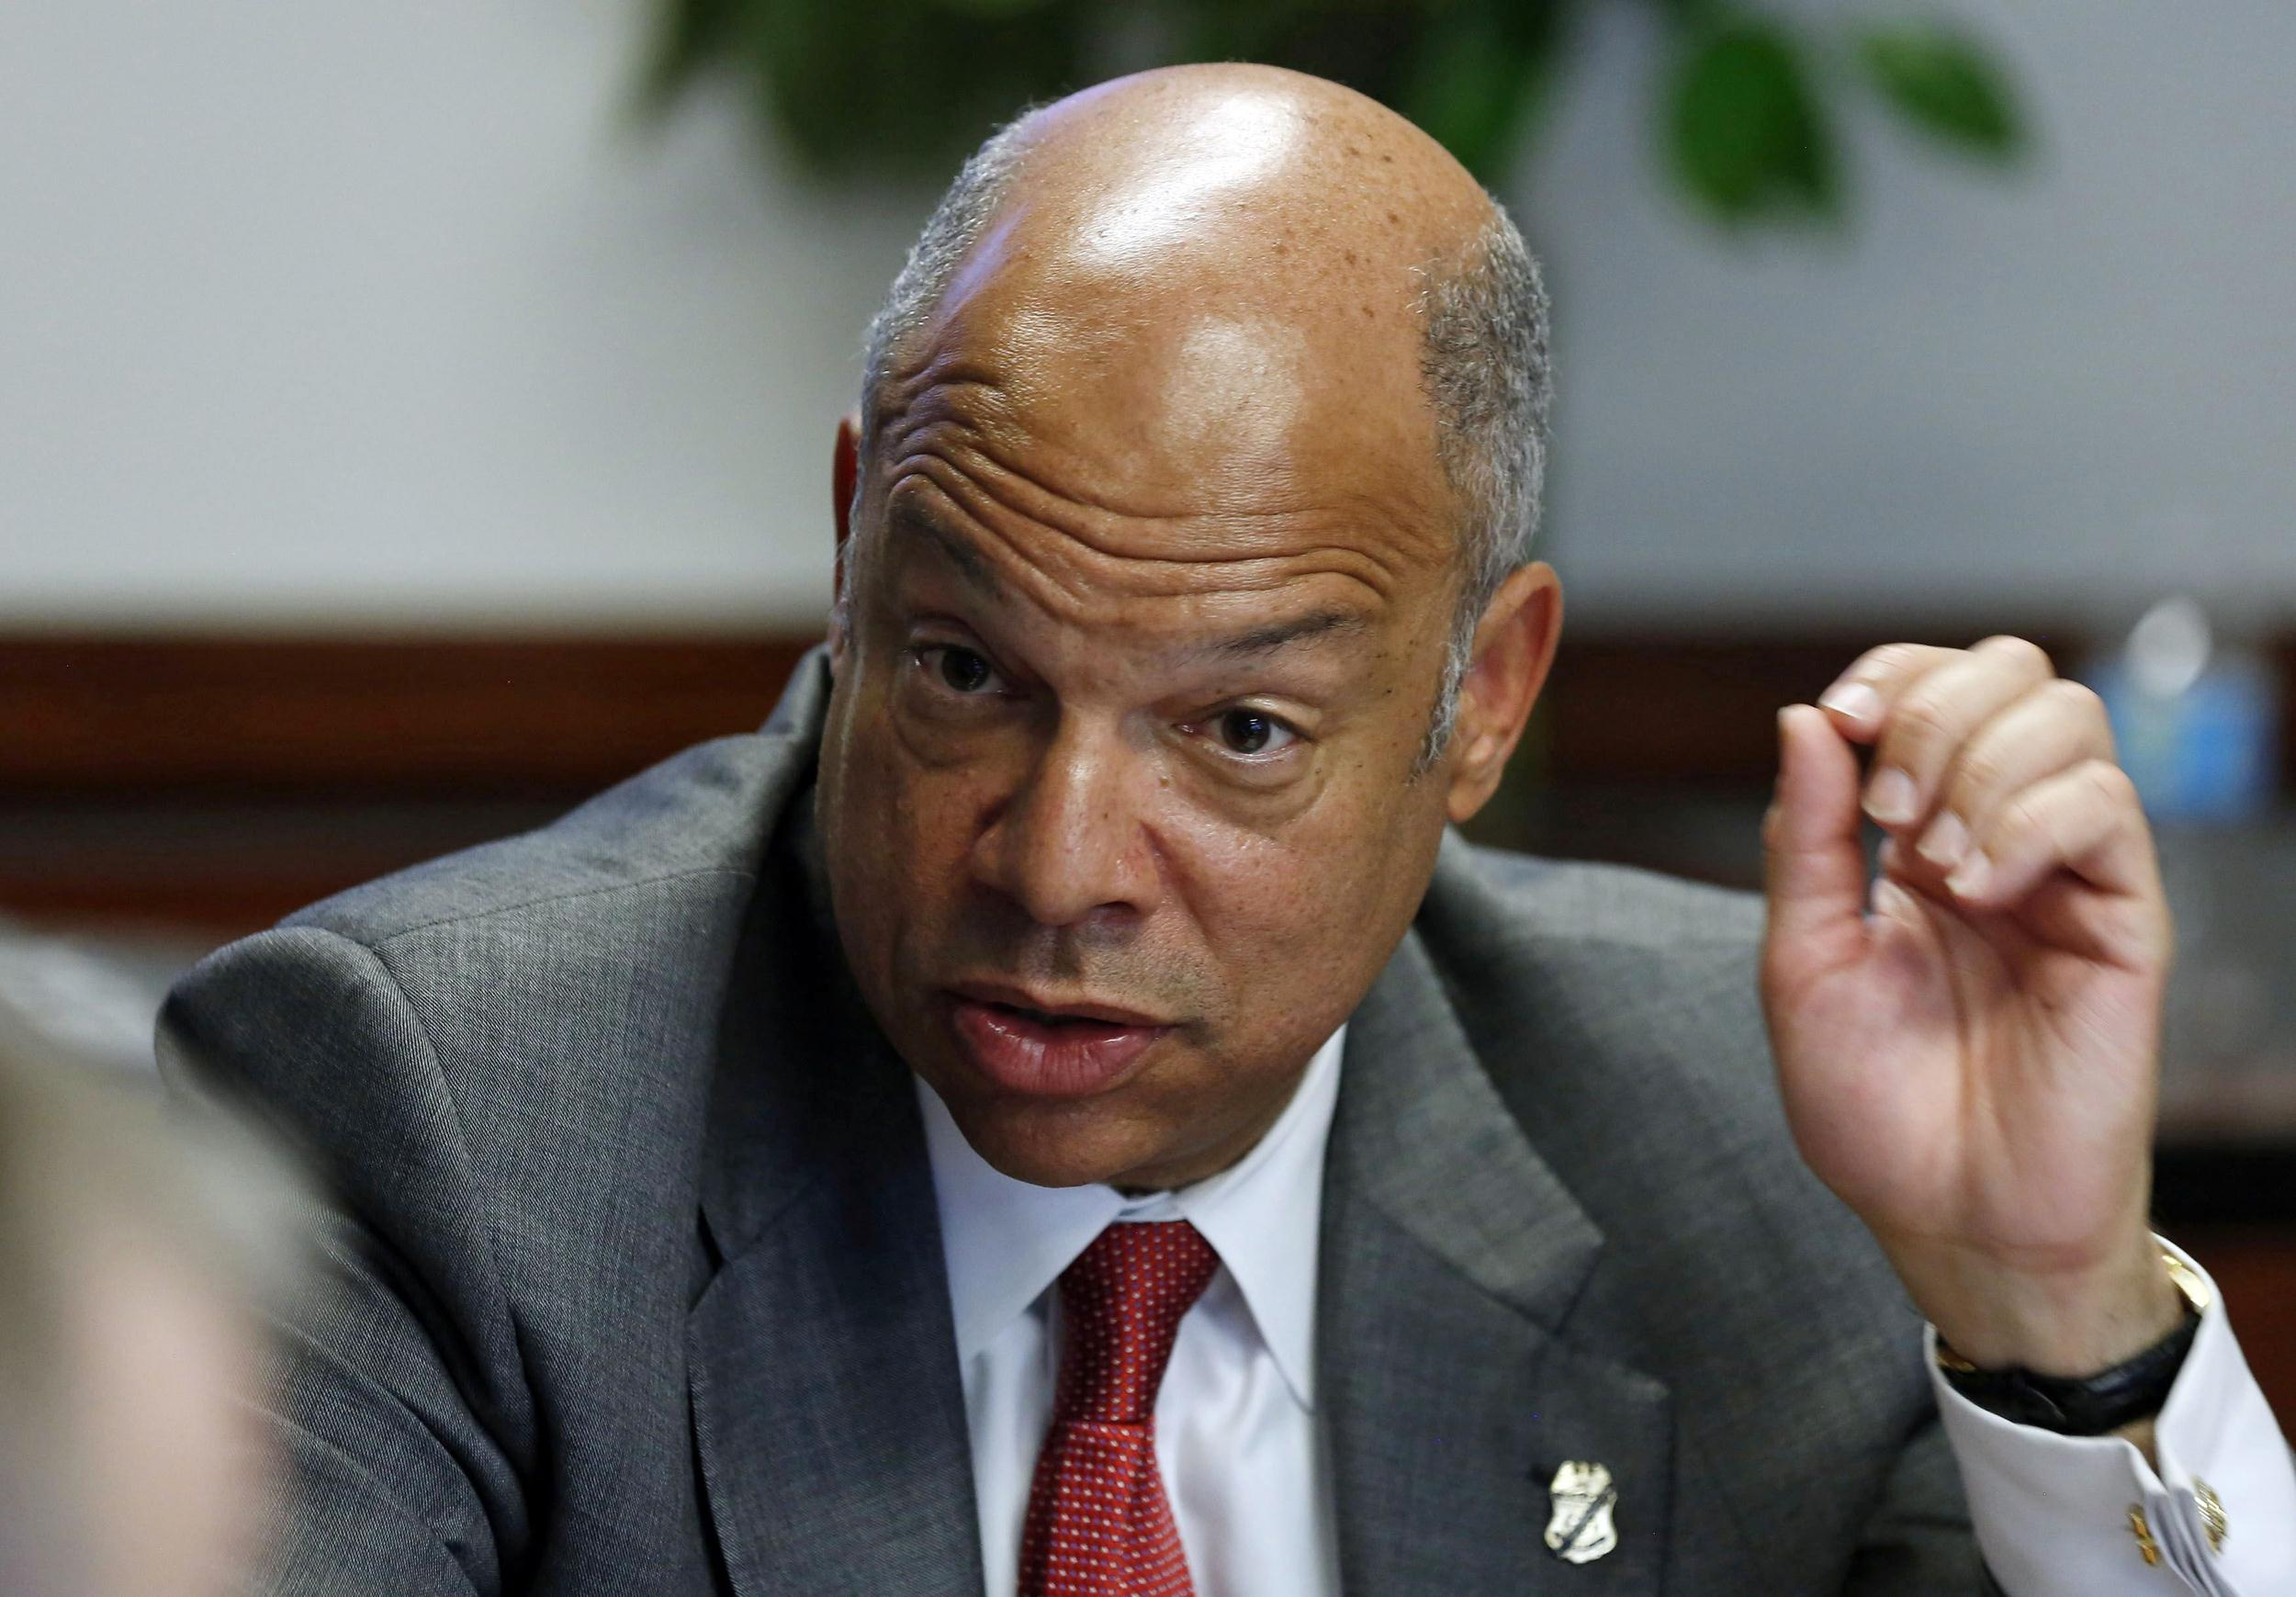 http://media1.s-nbcnews.com/i/newscms/2014_22/473701/140529-jeh-johnson-mn-851_60fccc3ca5a5c78caceca6581699837f.jpg